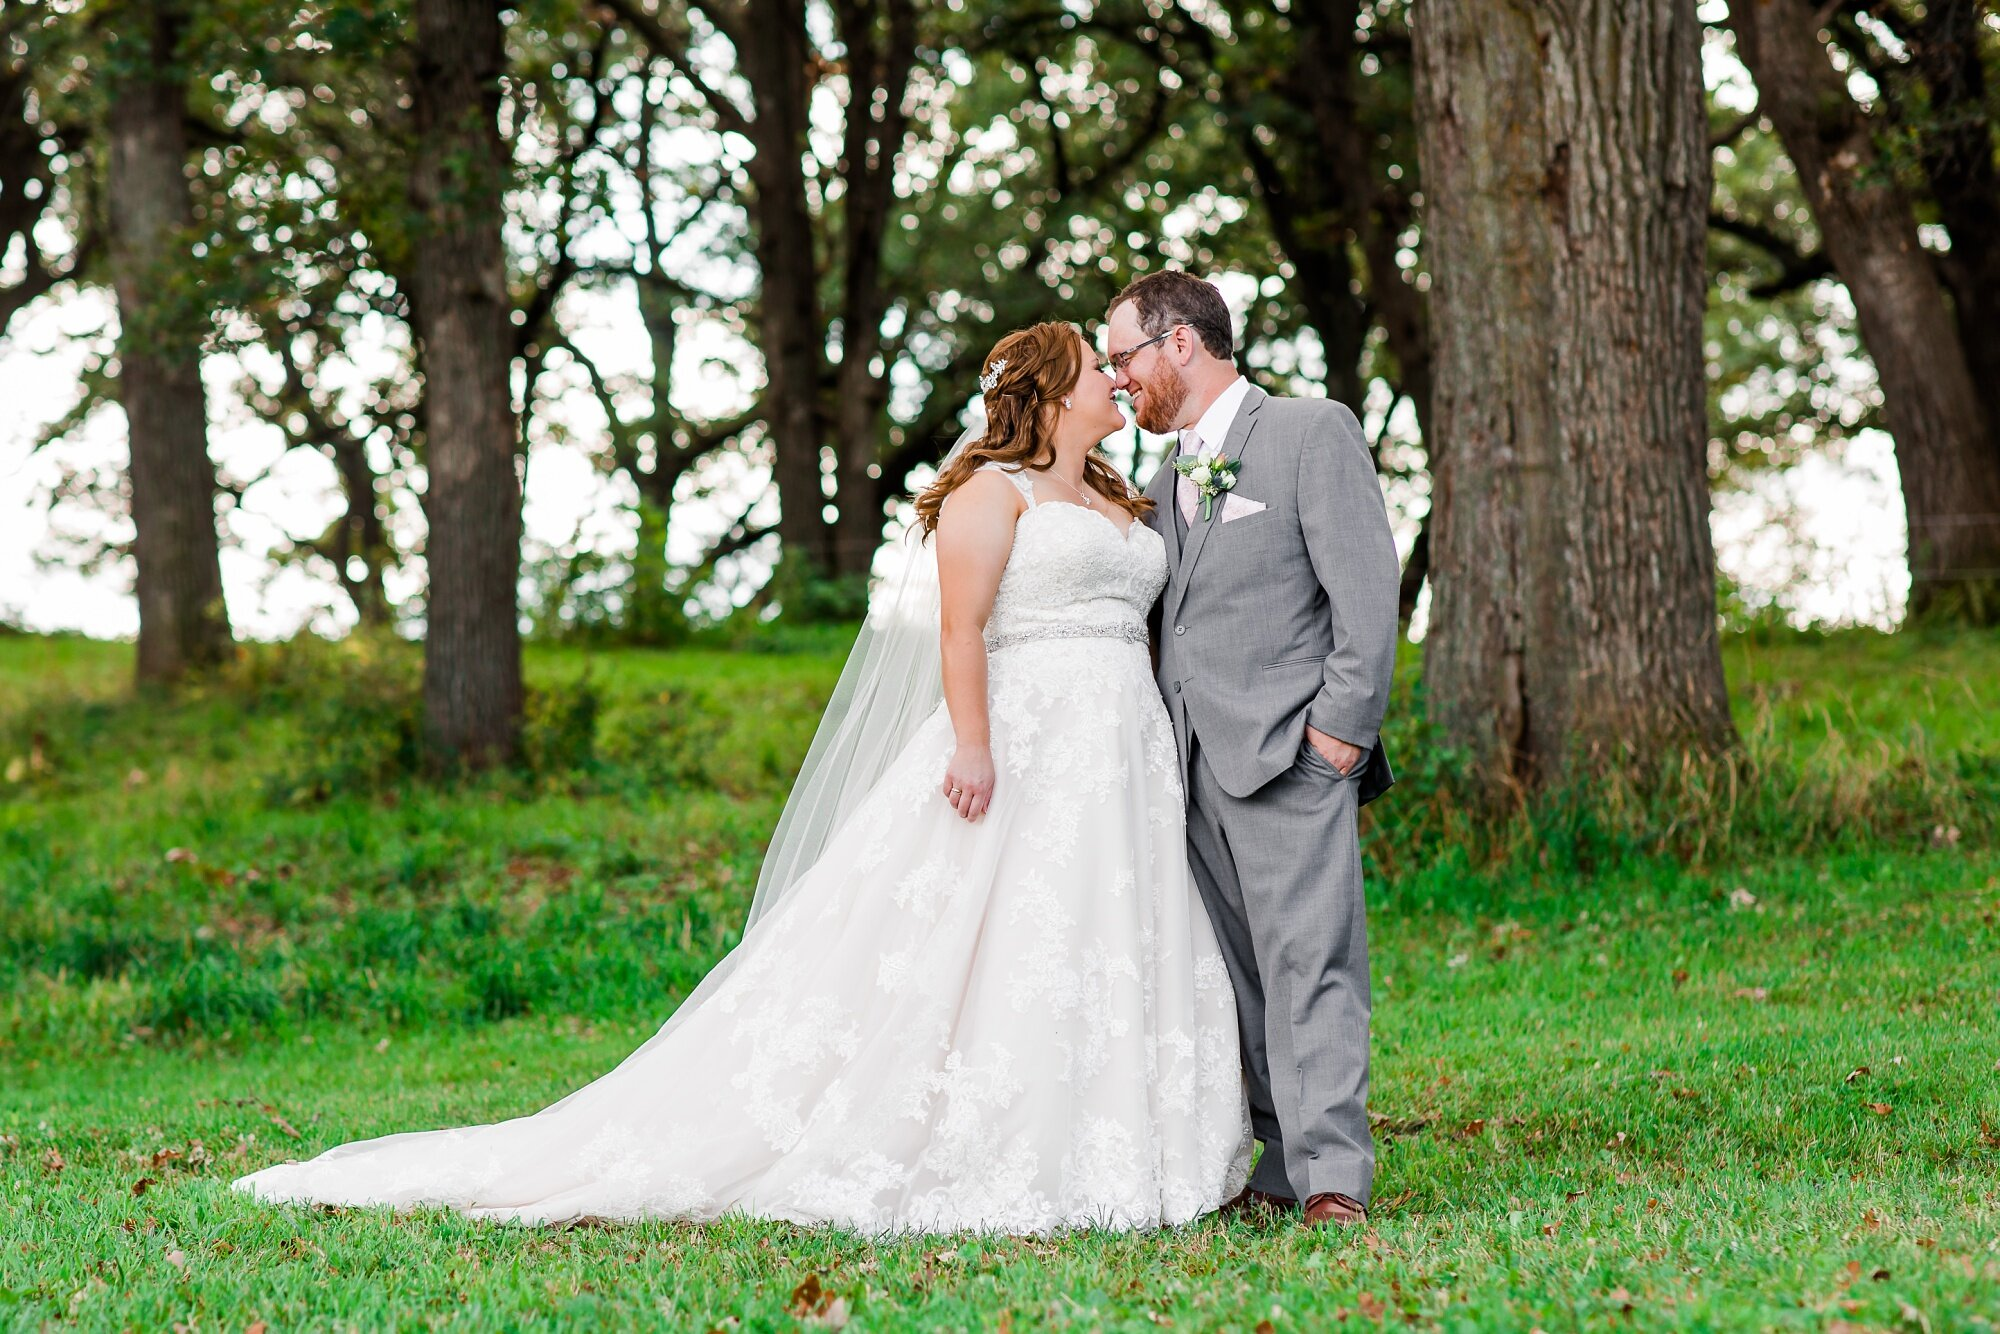 Amber Langerud Photography_Lake Park Minnesota, Outdoor Barn Wedding With Horses_6966.jpg